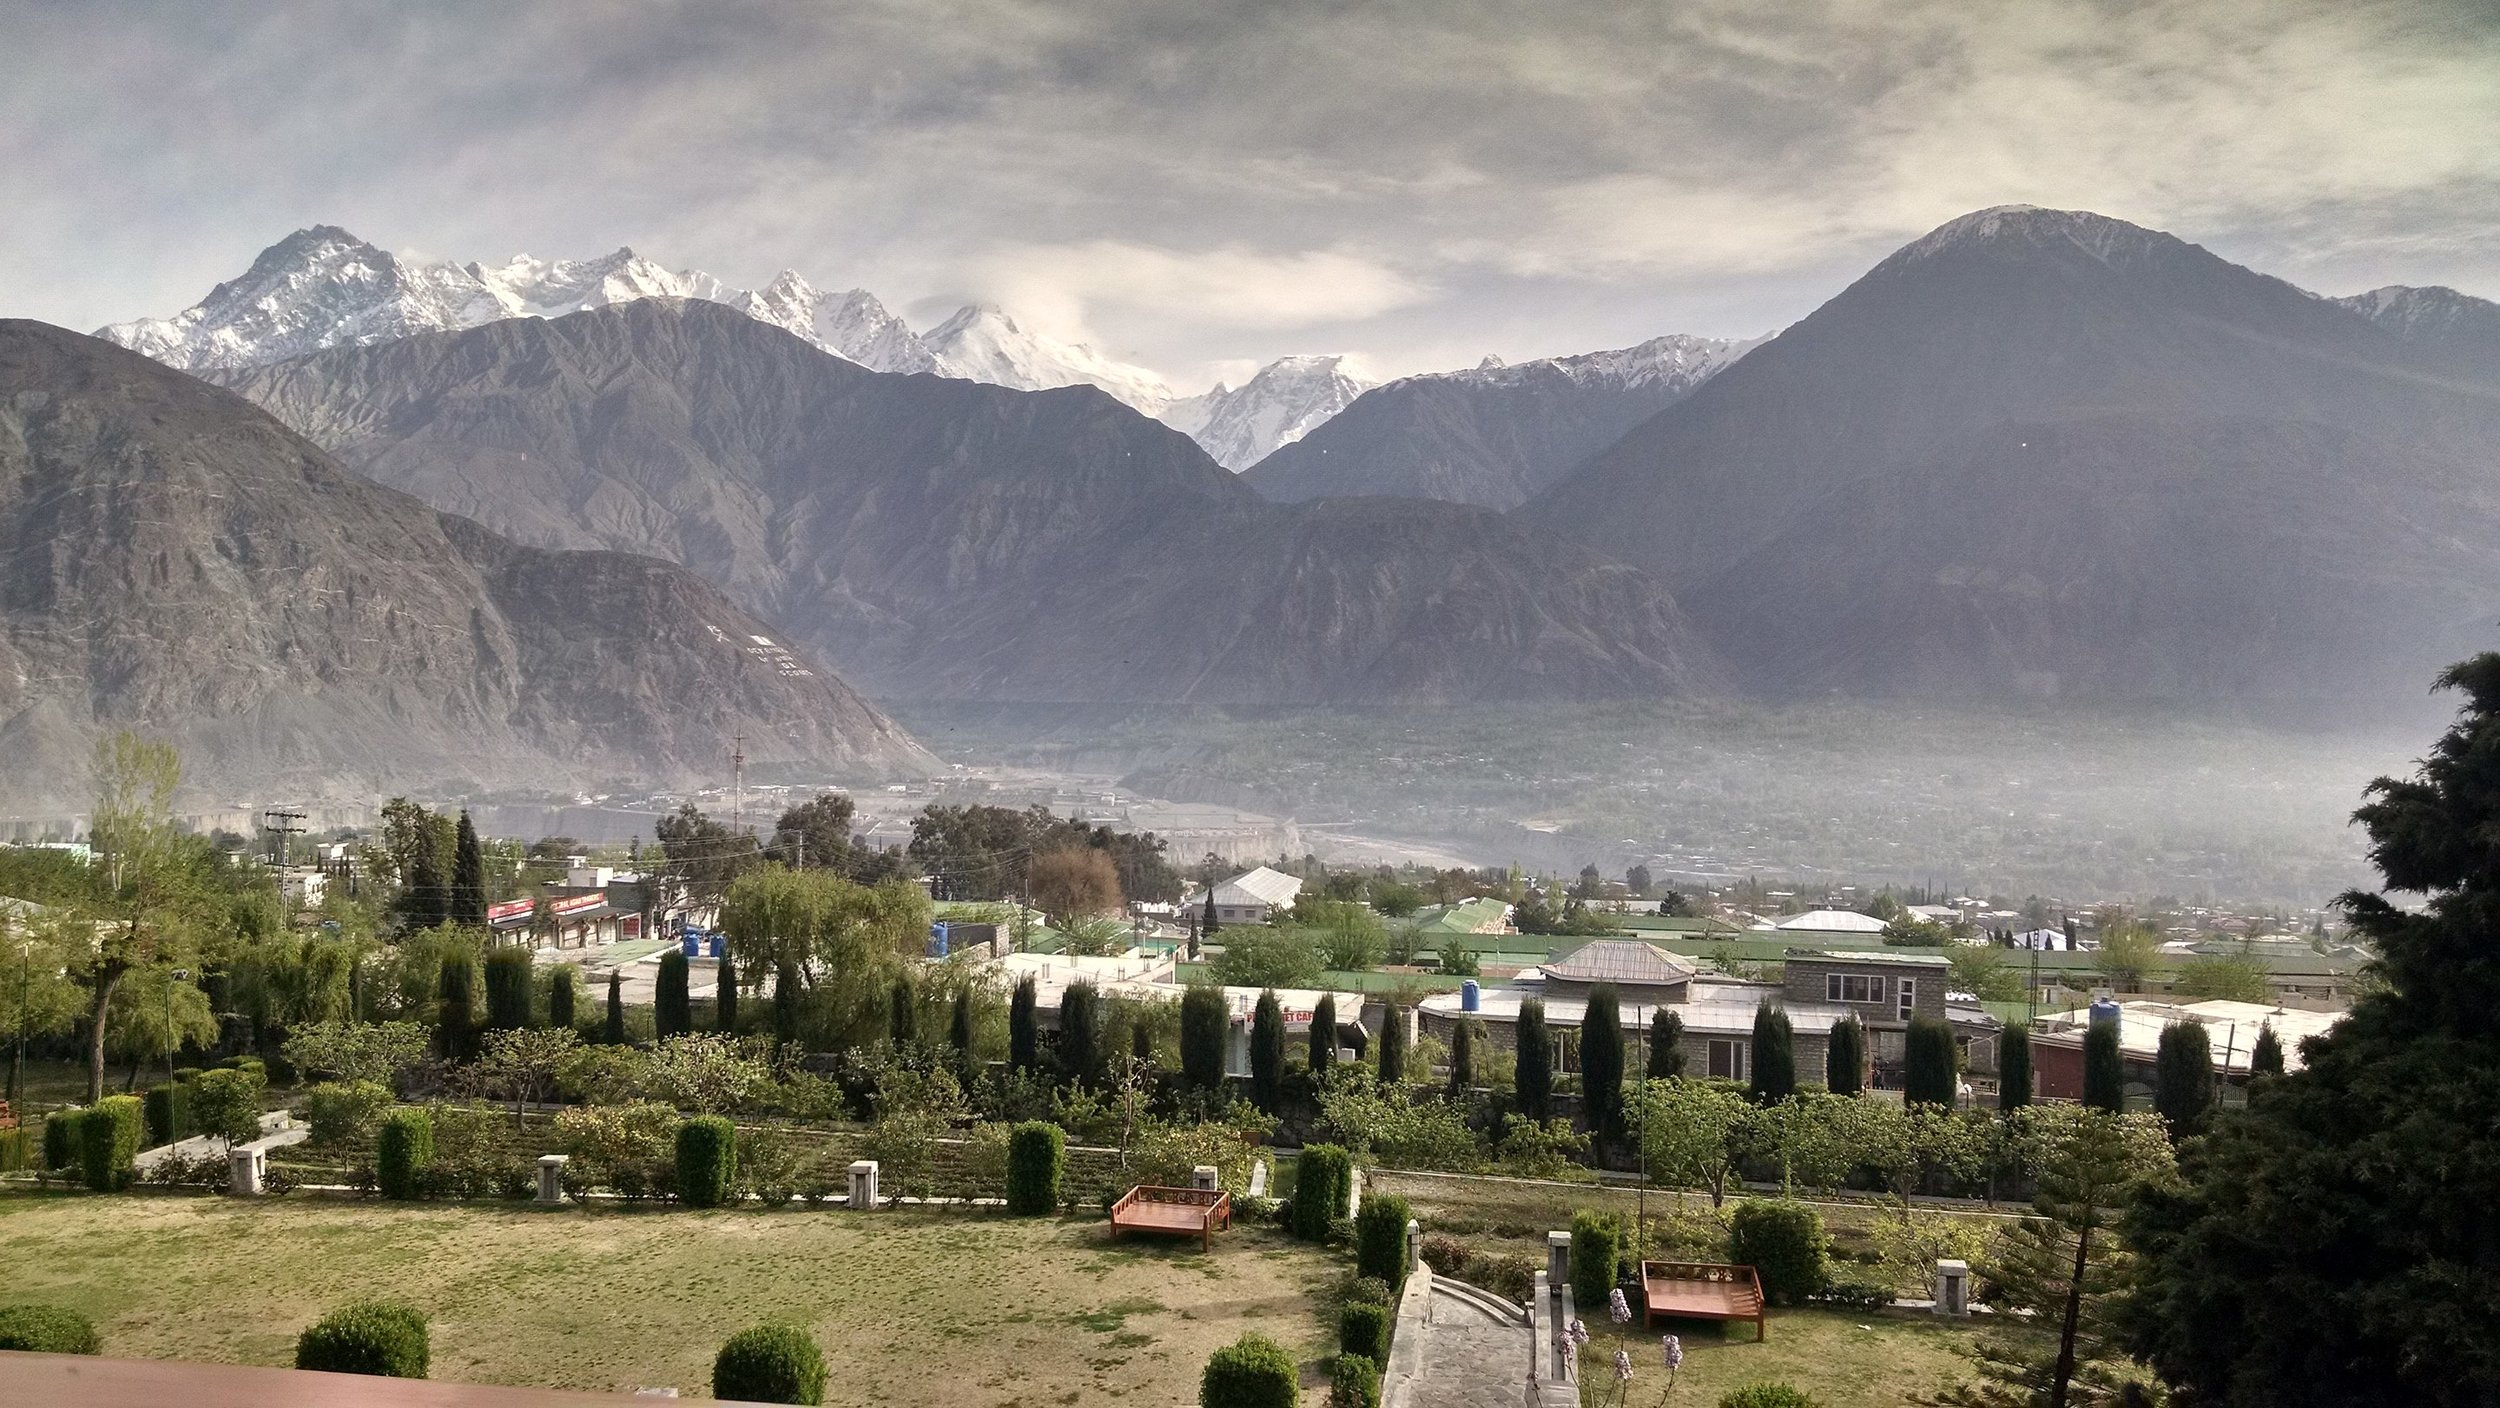 Gileet is the capital city of the Gilgit-Baltistan region, an administrative territory of Pakistan Occupied Kashmir, but claimed by India as its territory.